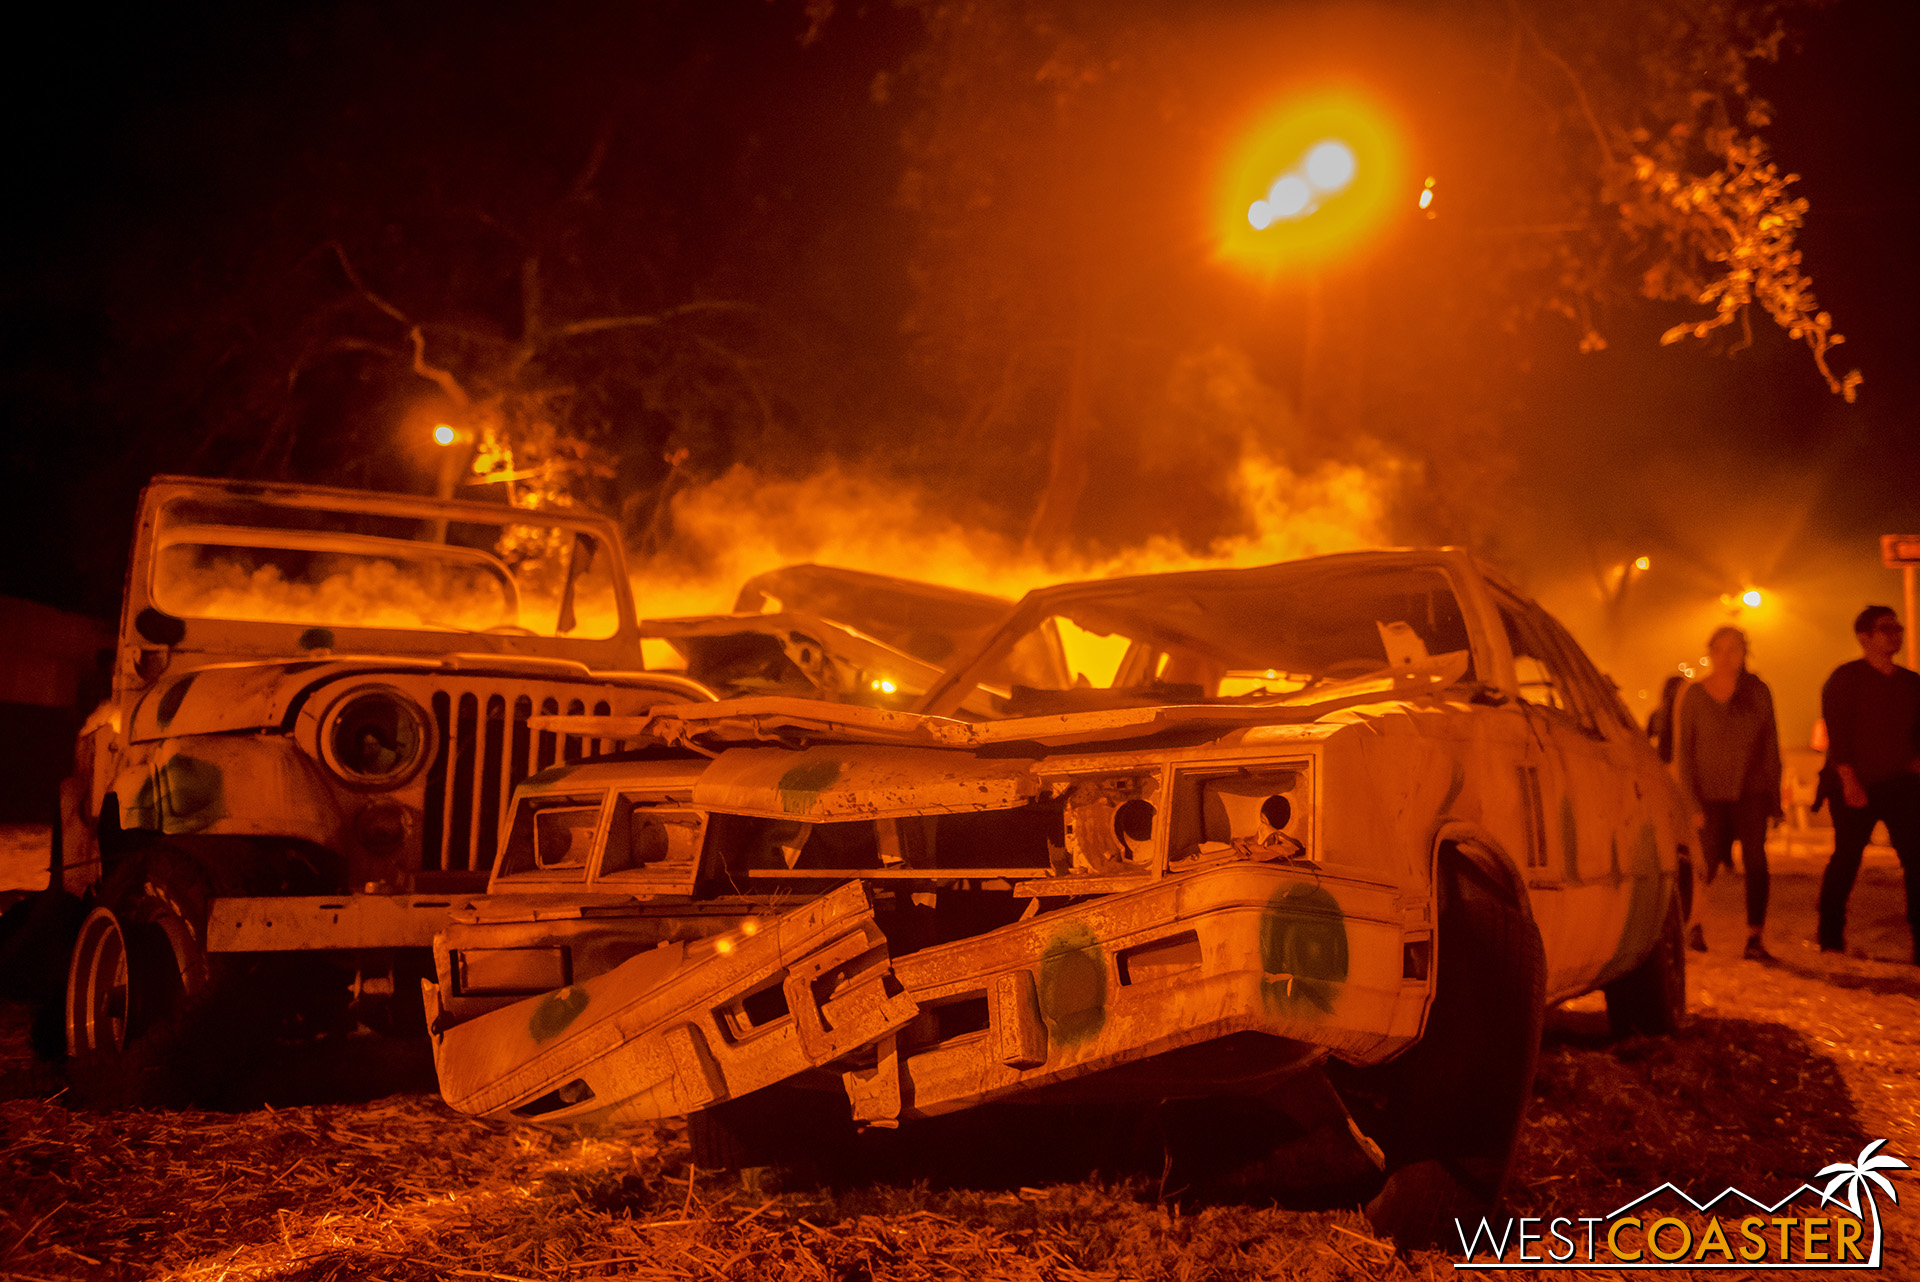 These cars appear to be in a bit of limbo in Purgatory at the L.A. Haunted Hayride.